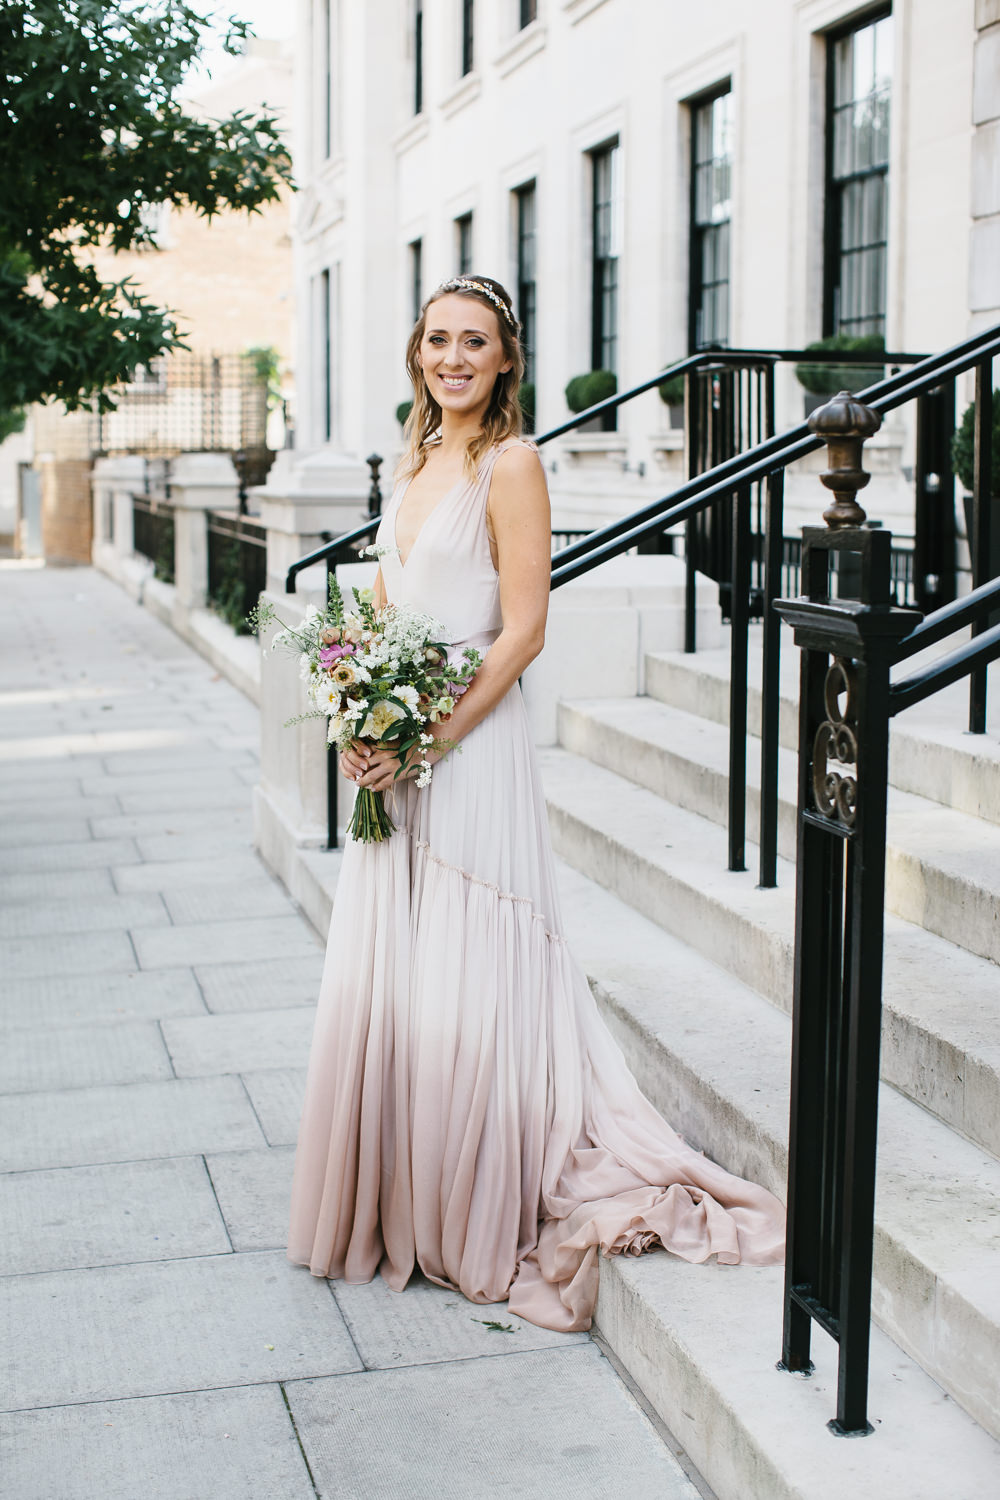 Stylish City Wedding at London Fields Brewery with Blush Ombre Dress